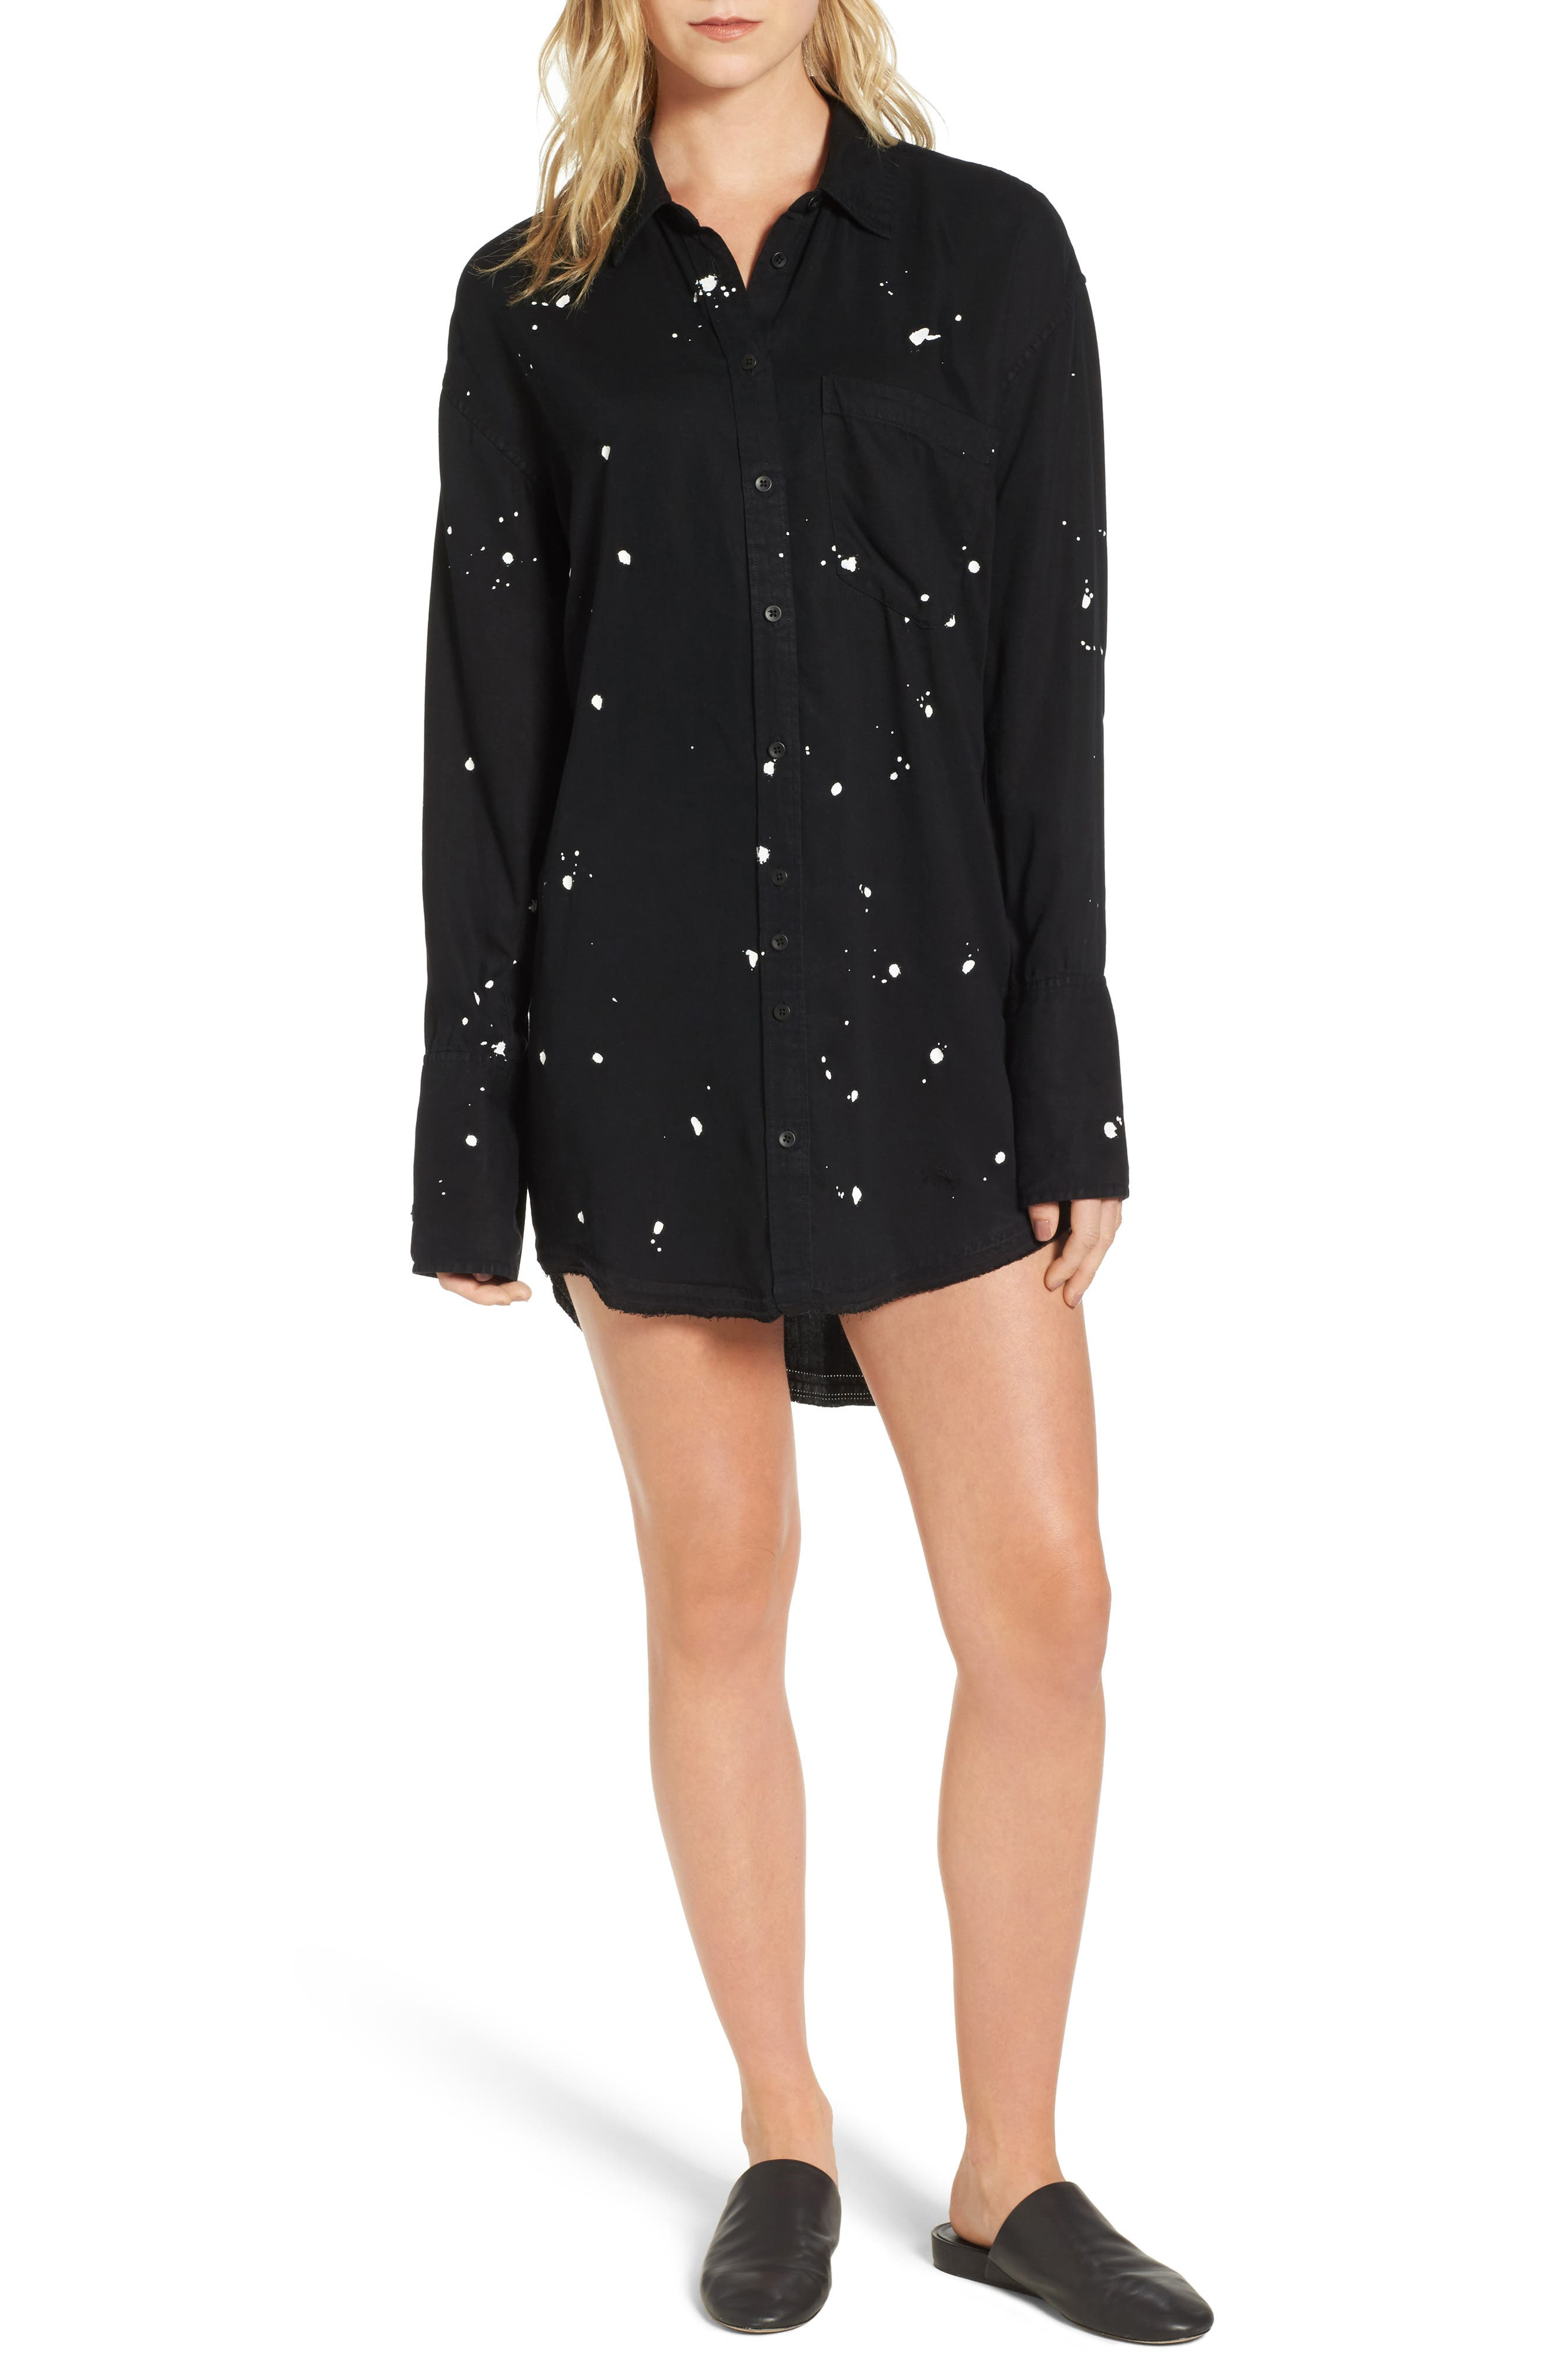 Rivington & Essex Shirtdress,                         Main,                         color, Solid Black Overdye With Paint